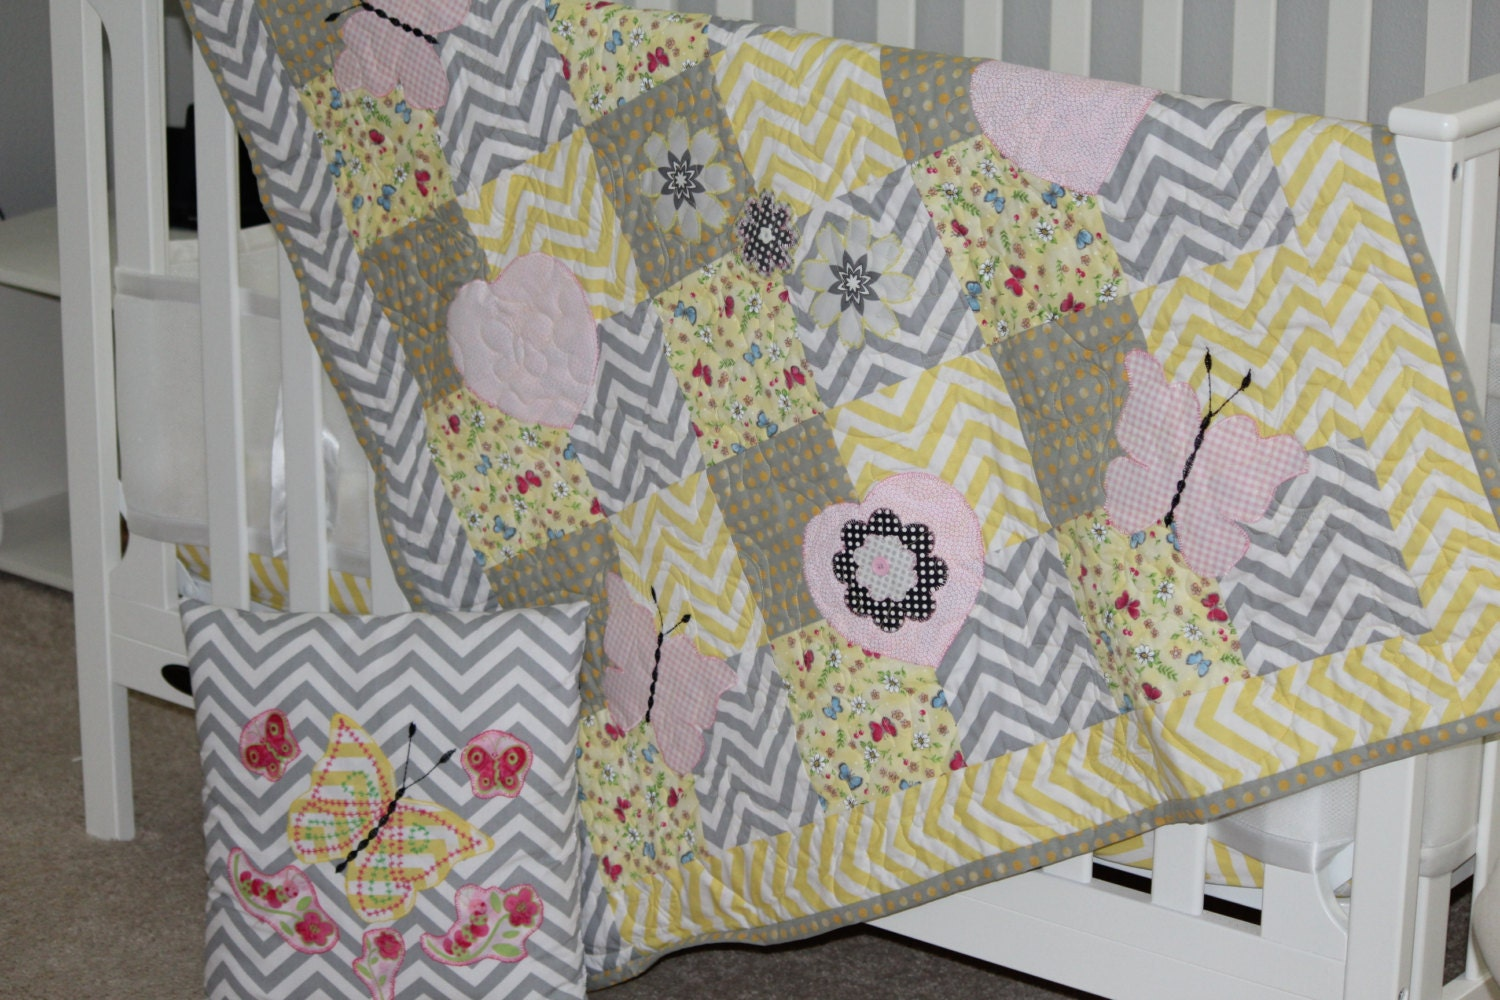 Baby Quilt, Gray and Yellow baby quilt, Gray chevron baby quilt ... : yellow and gray baby quilt - Adamdwight.com